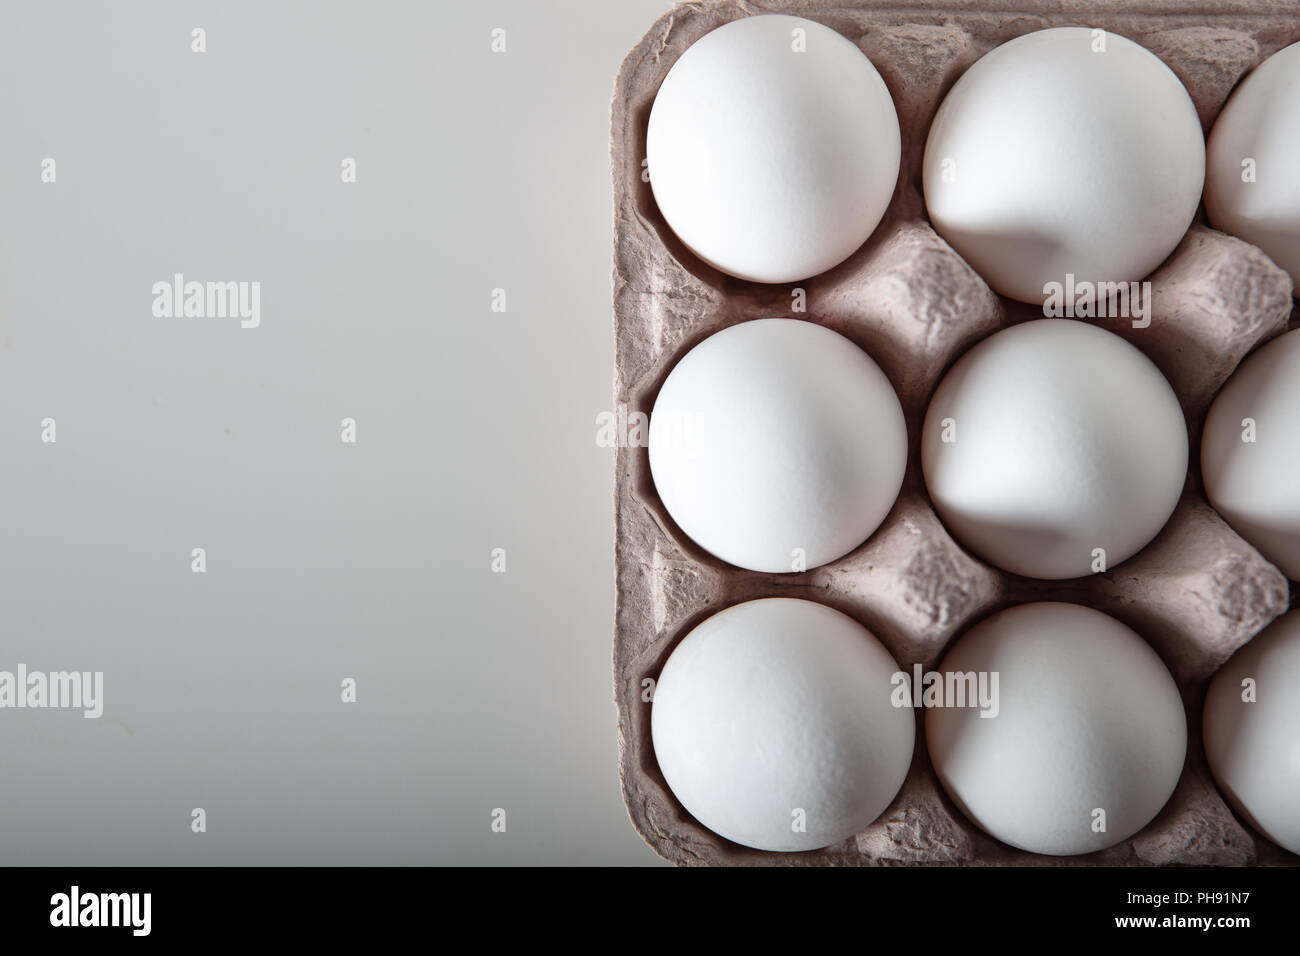 Top view of fresh eggs on paper tray. Full frame high quality image ...